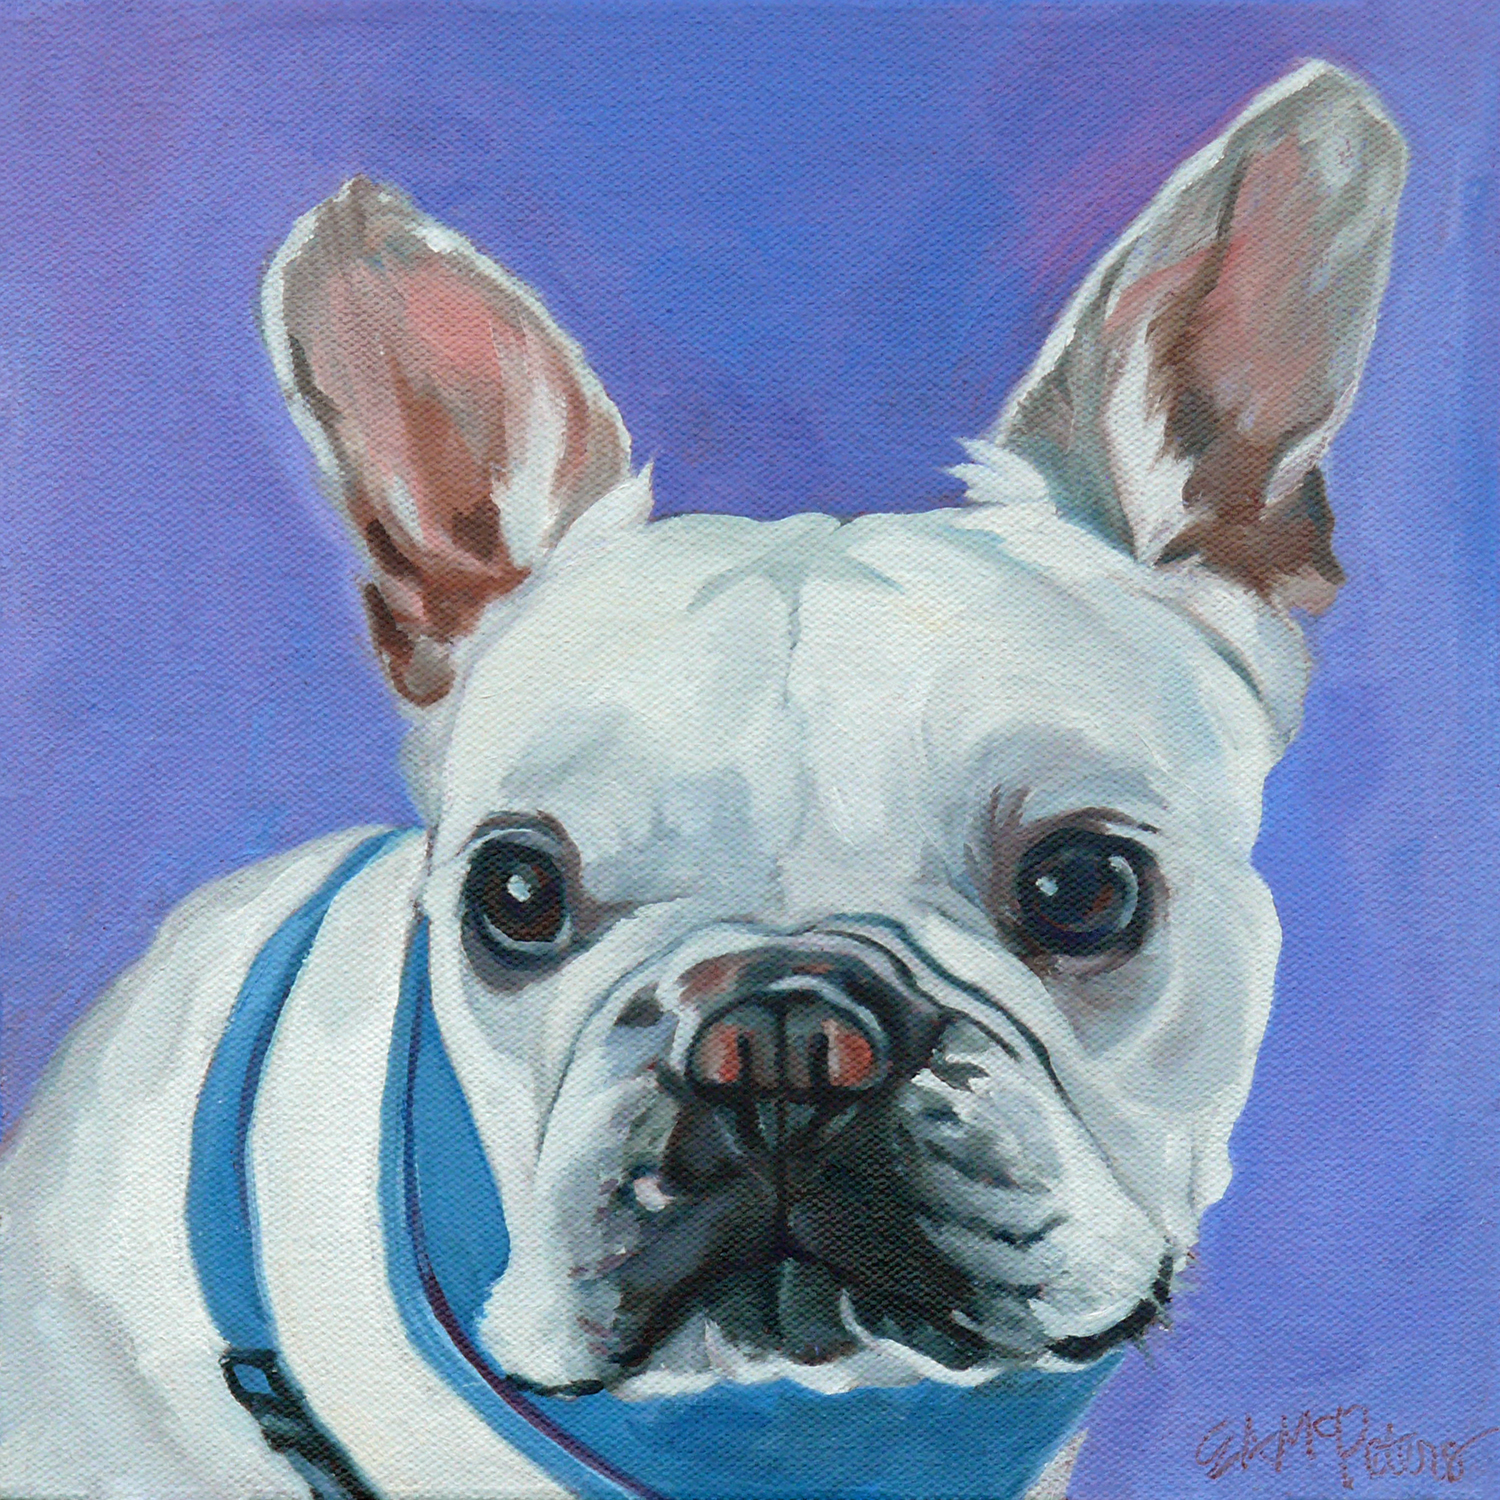 Buddy the French Bulldog